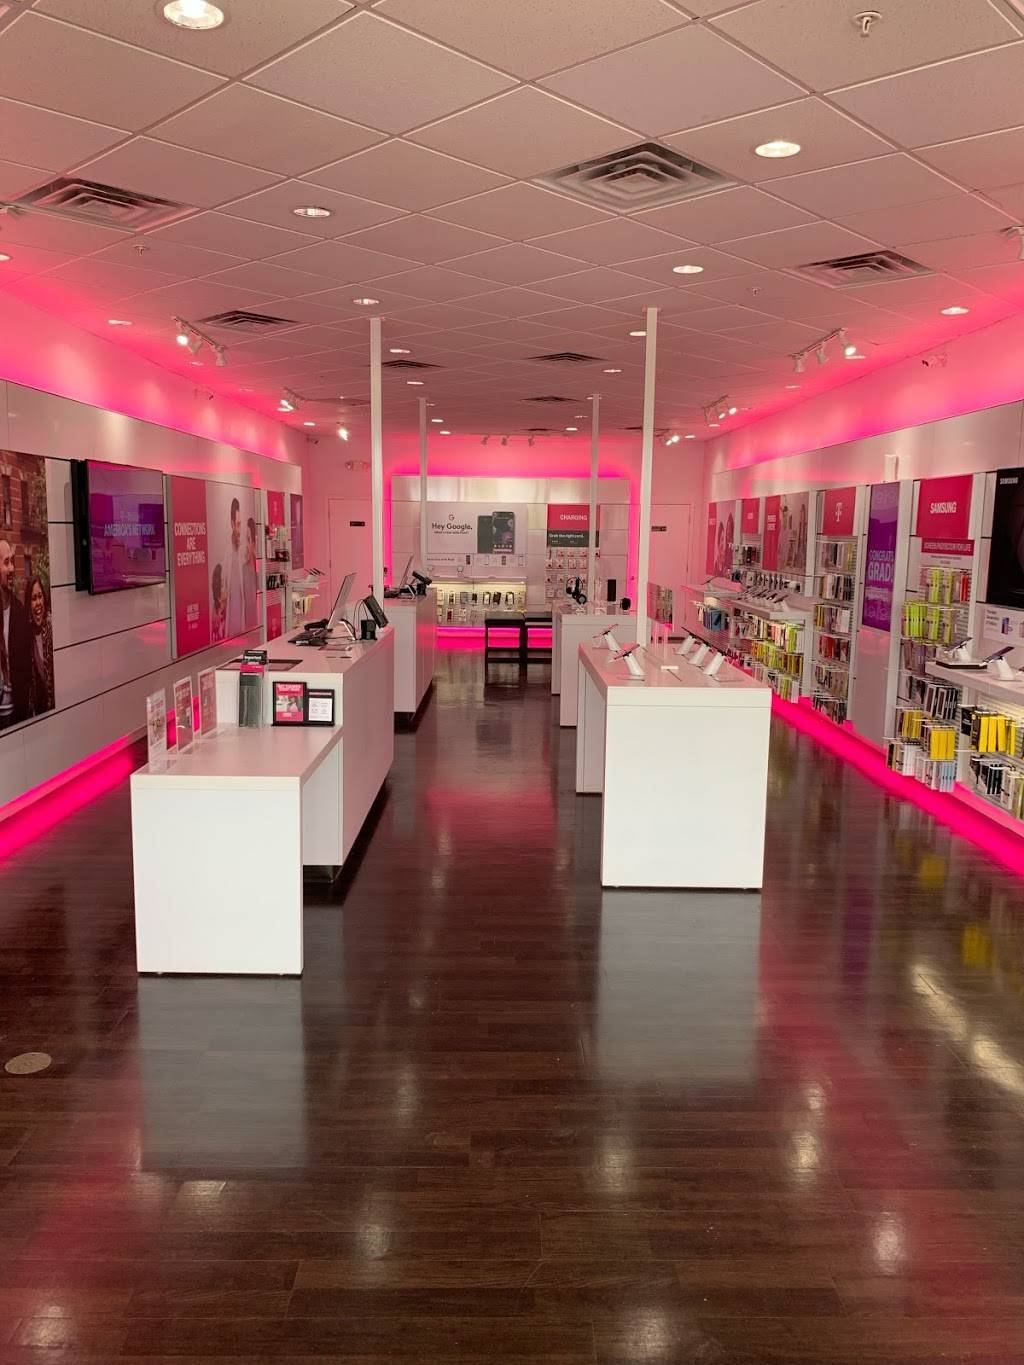 T-Mobile - electronics store  | Photo 2 of 4 | Address: 187 Rivers Edge Dr, Milford, OH 45150, USA | Phone: (513) 239-5936